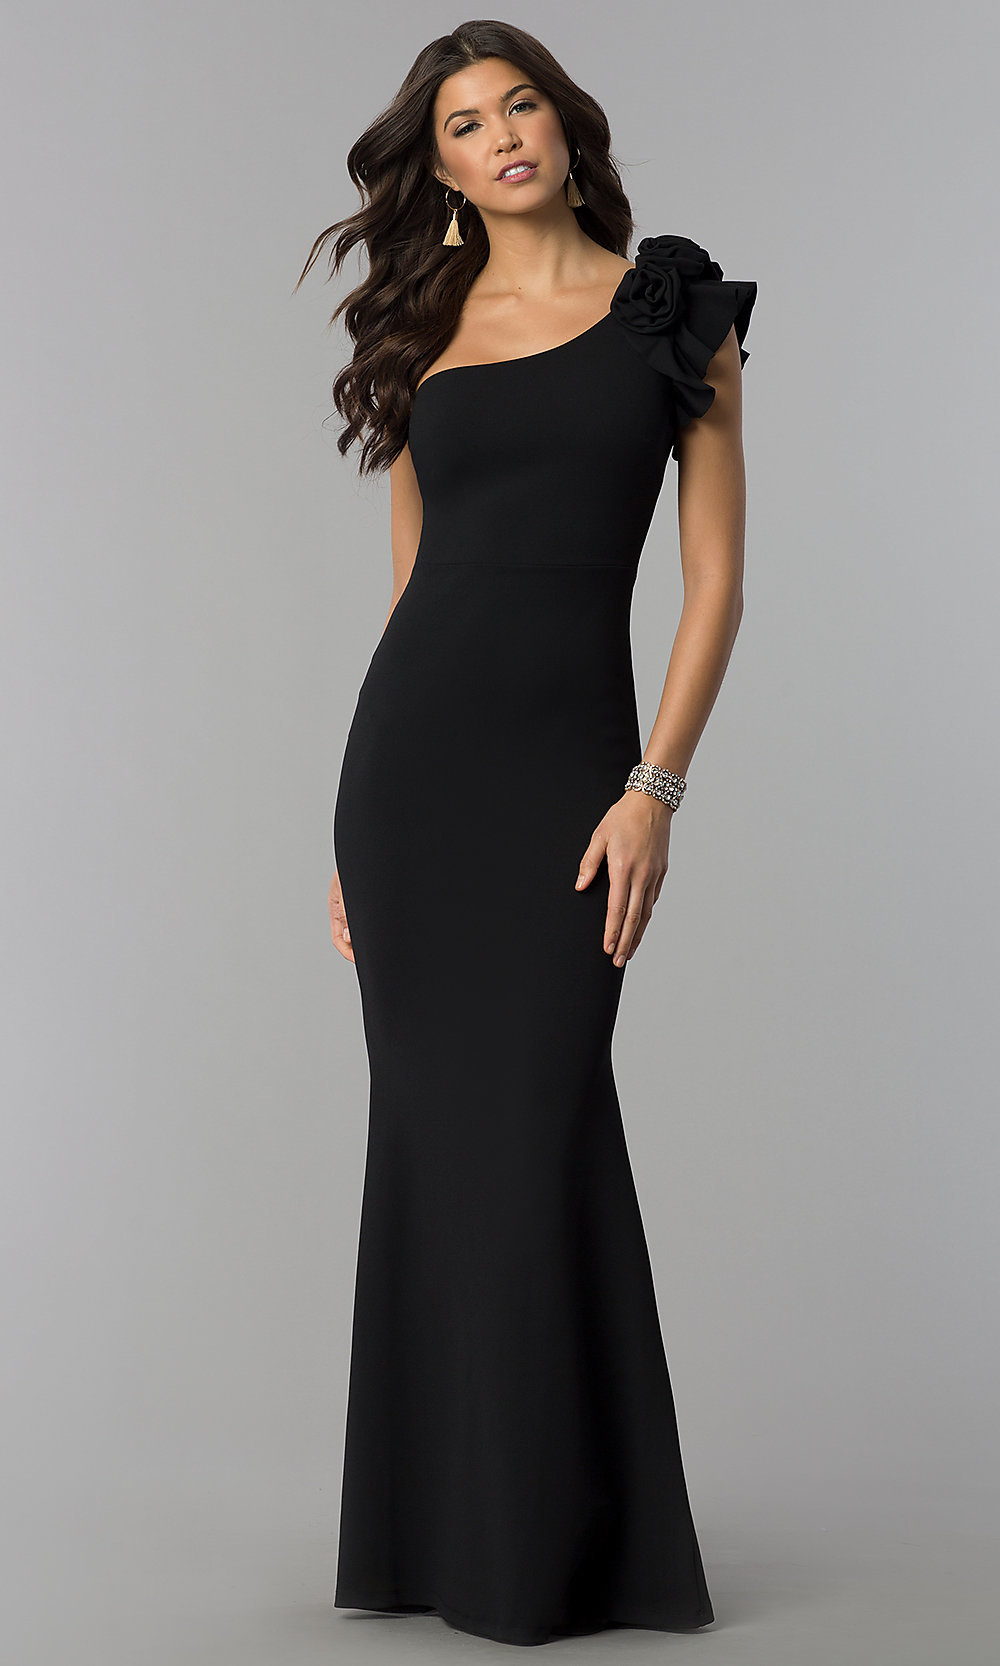 Lace Evening Dress | Style 71423 | Morilee